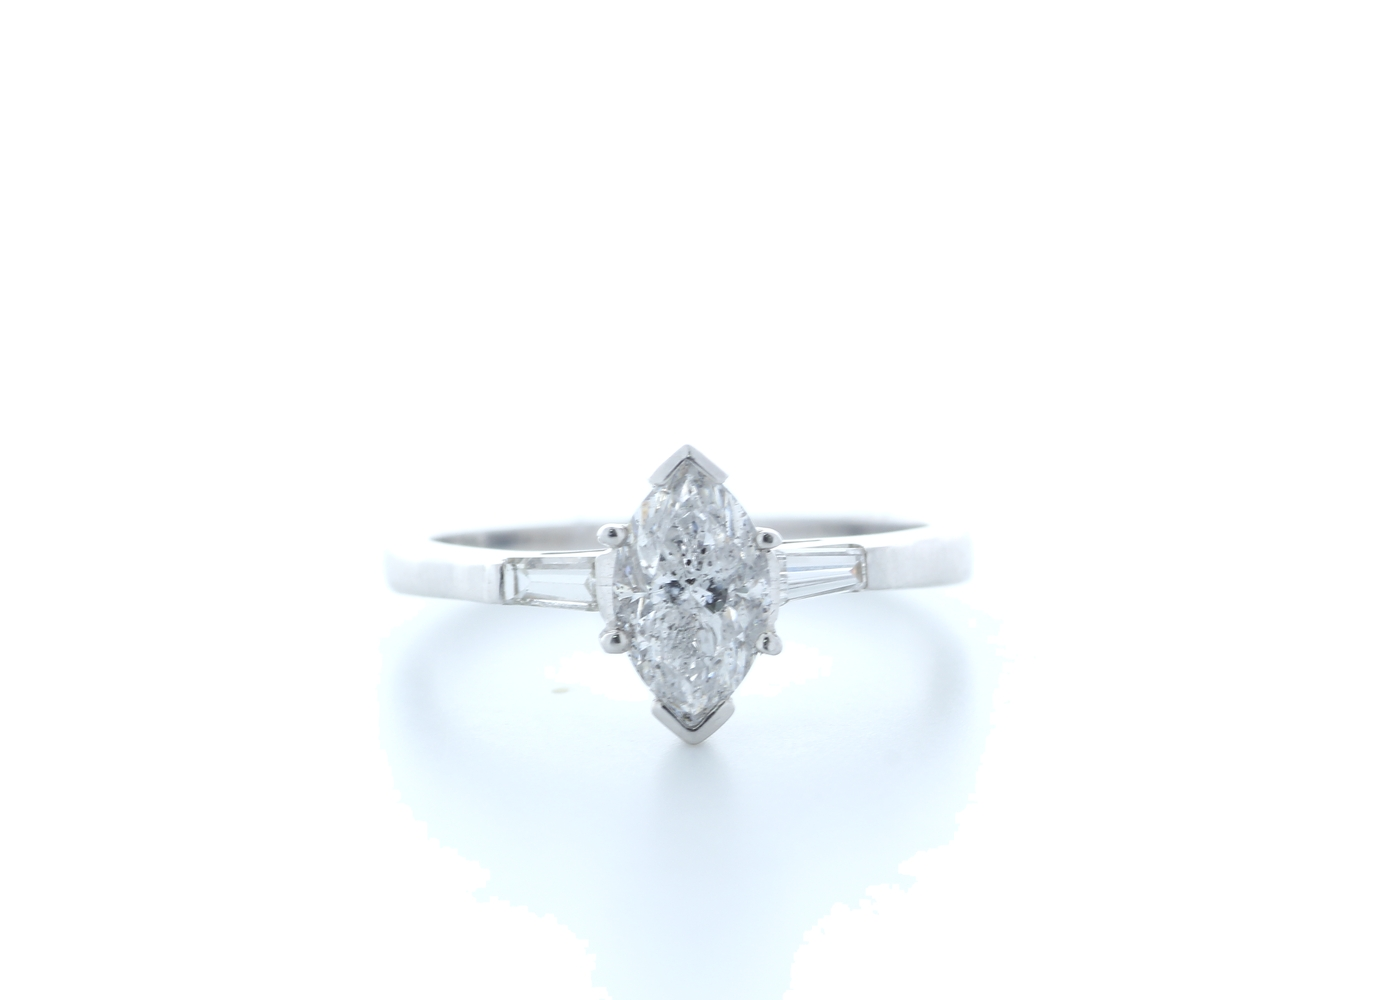 18ct White Gold Marquise Diamond With Stone Set Shoulders 1.22 Carats